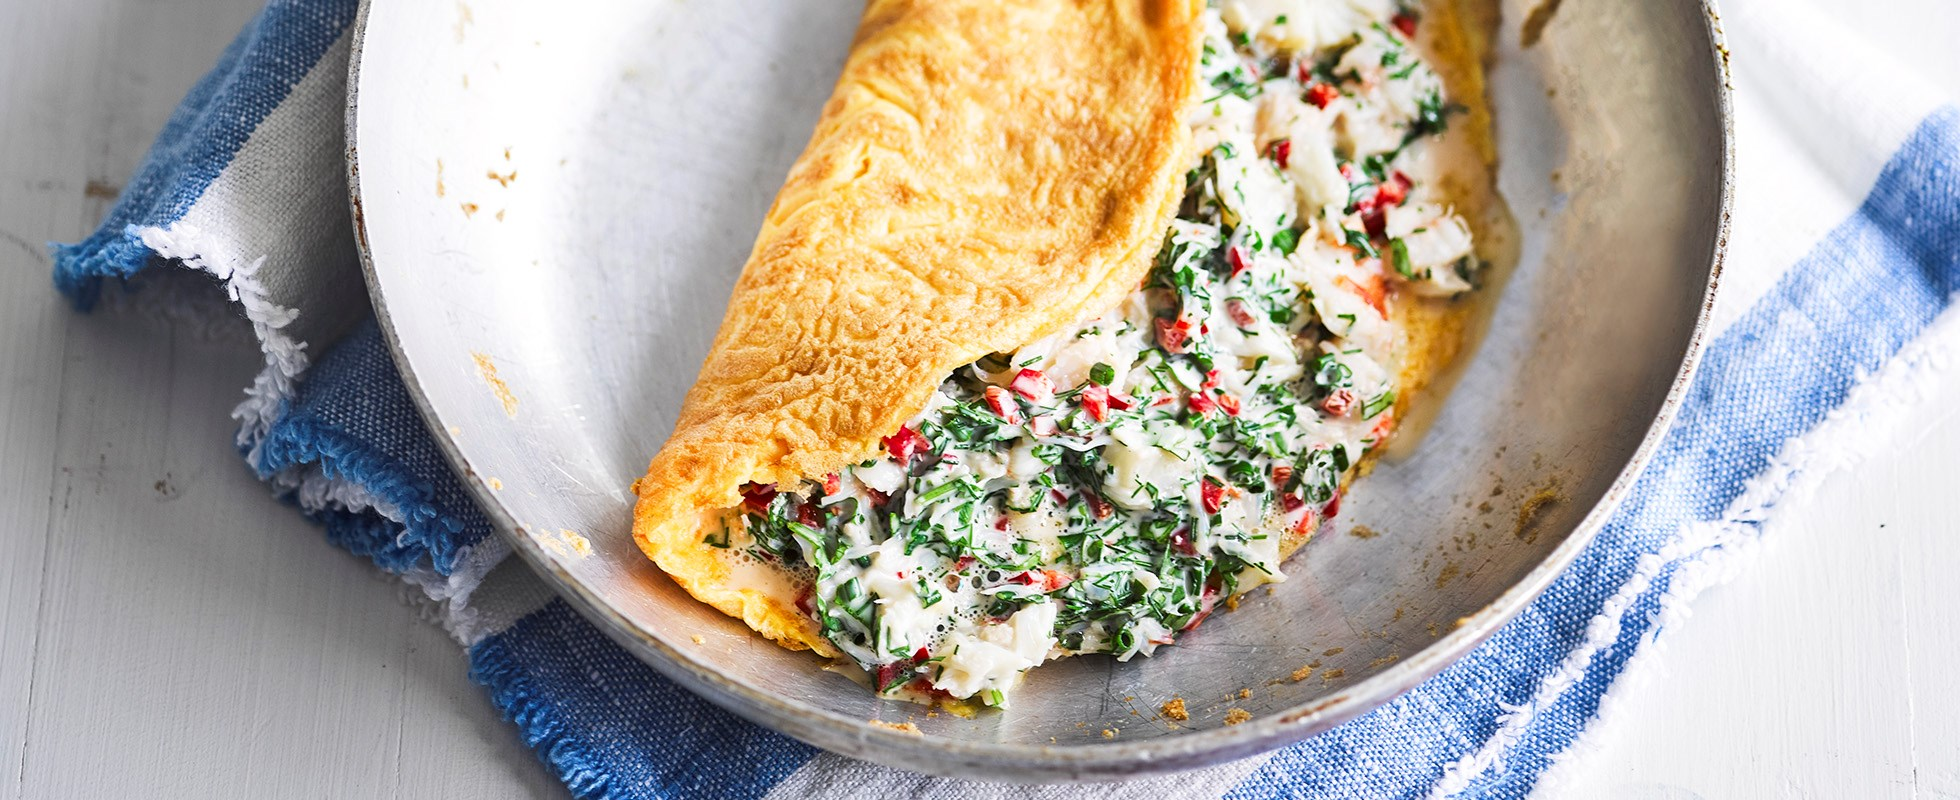 Crab, chilli and herb omelette